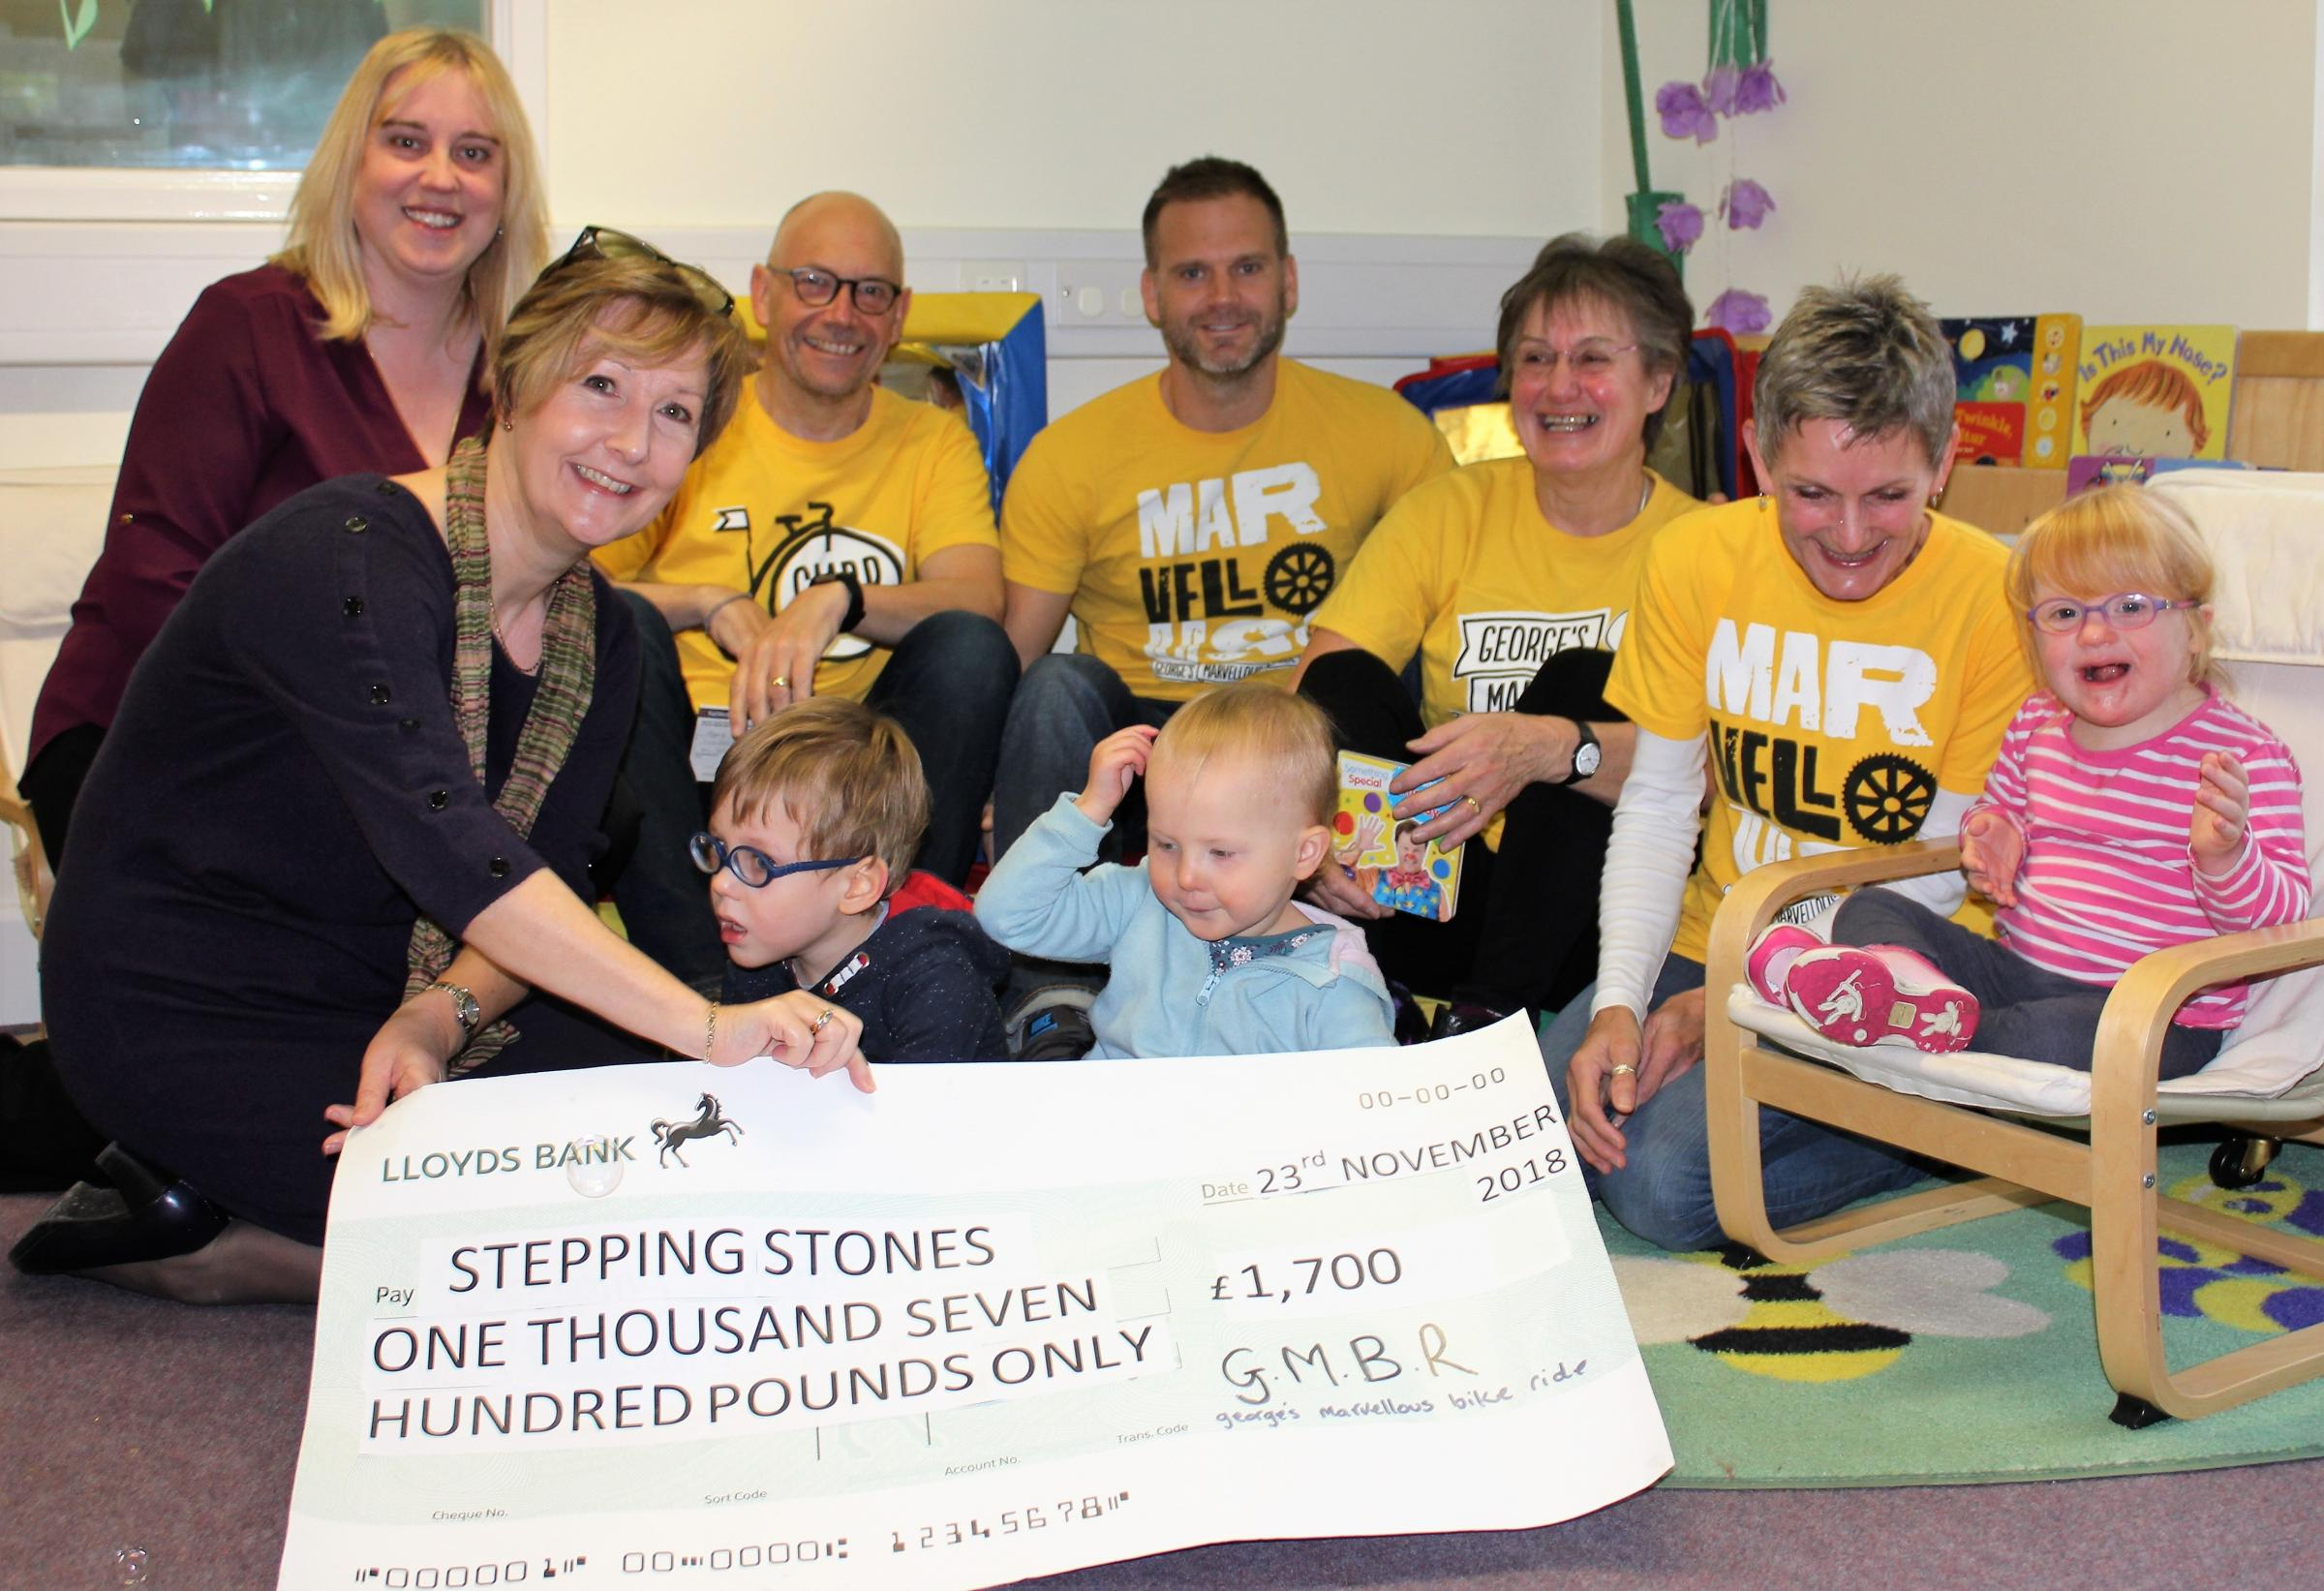 Anna Hutchings, of George's Marvellous Bike Ride, hands over the £1,700 cheque to Stepping Stones